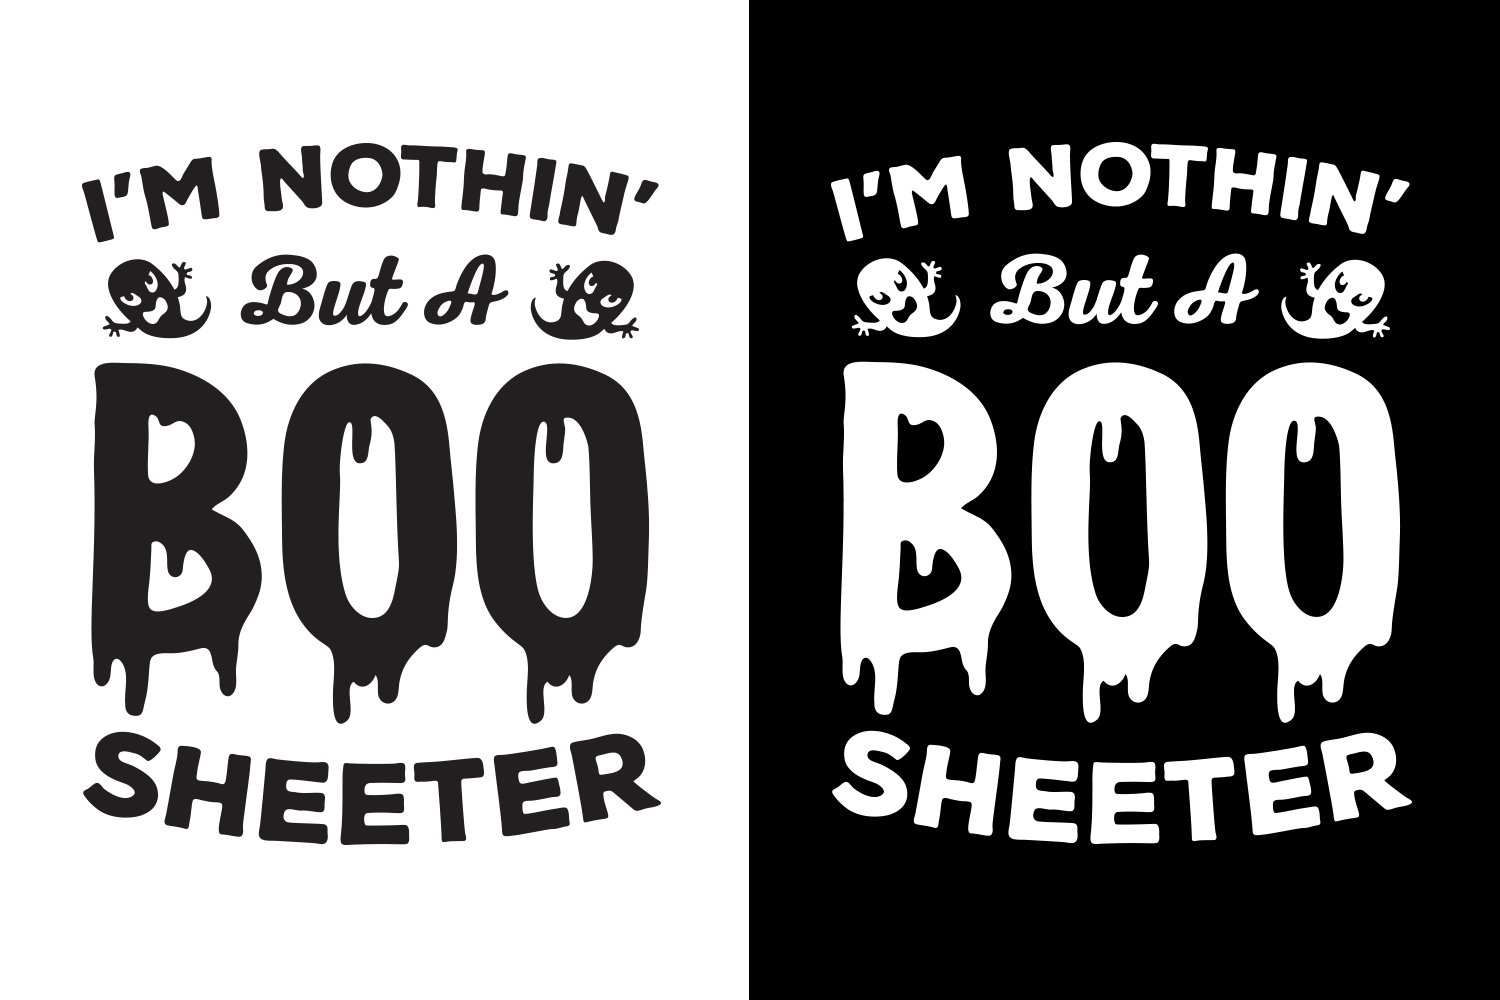 Halloween SVG, Boo Sheeter, SVG Cut file example image 5